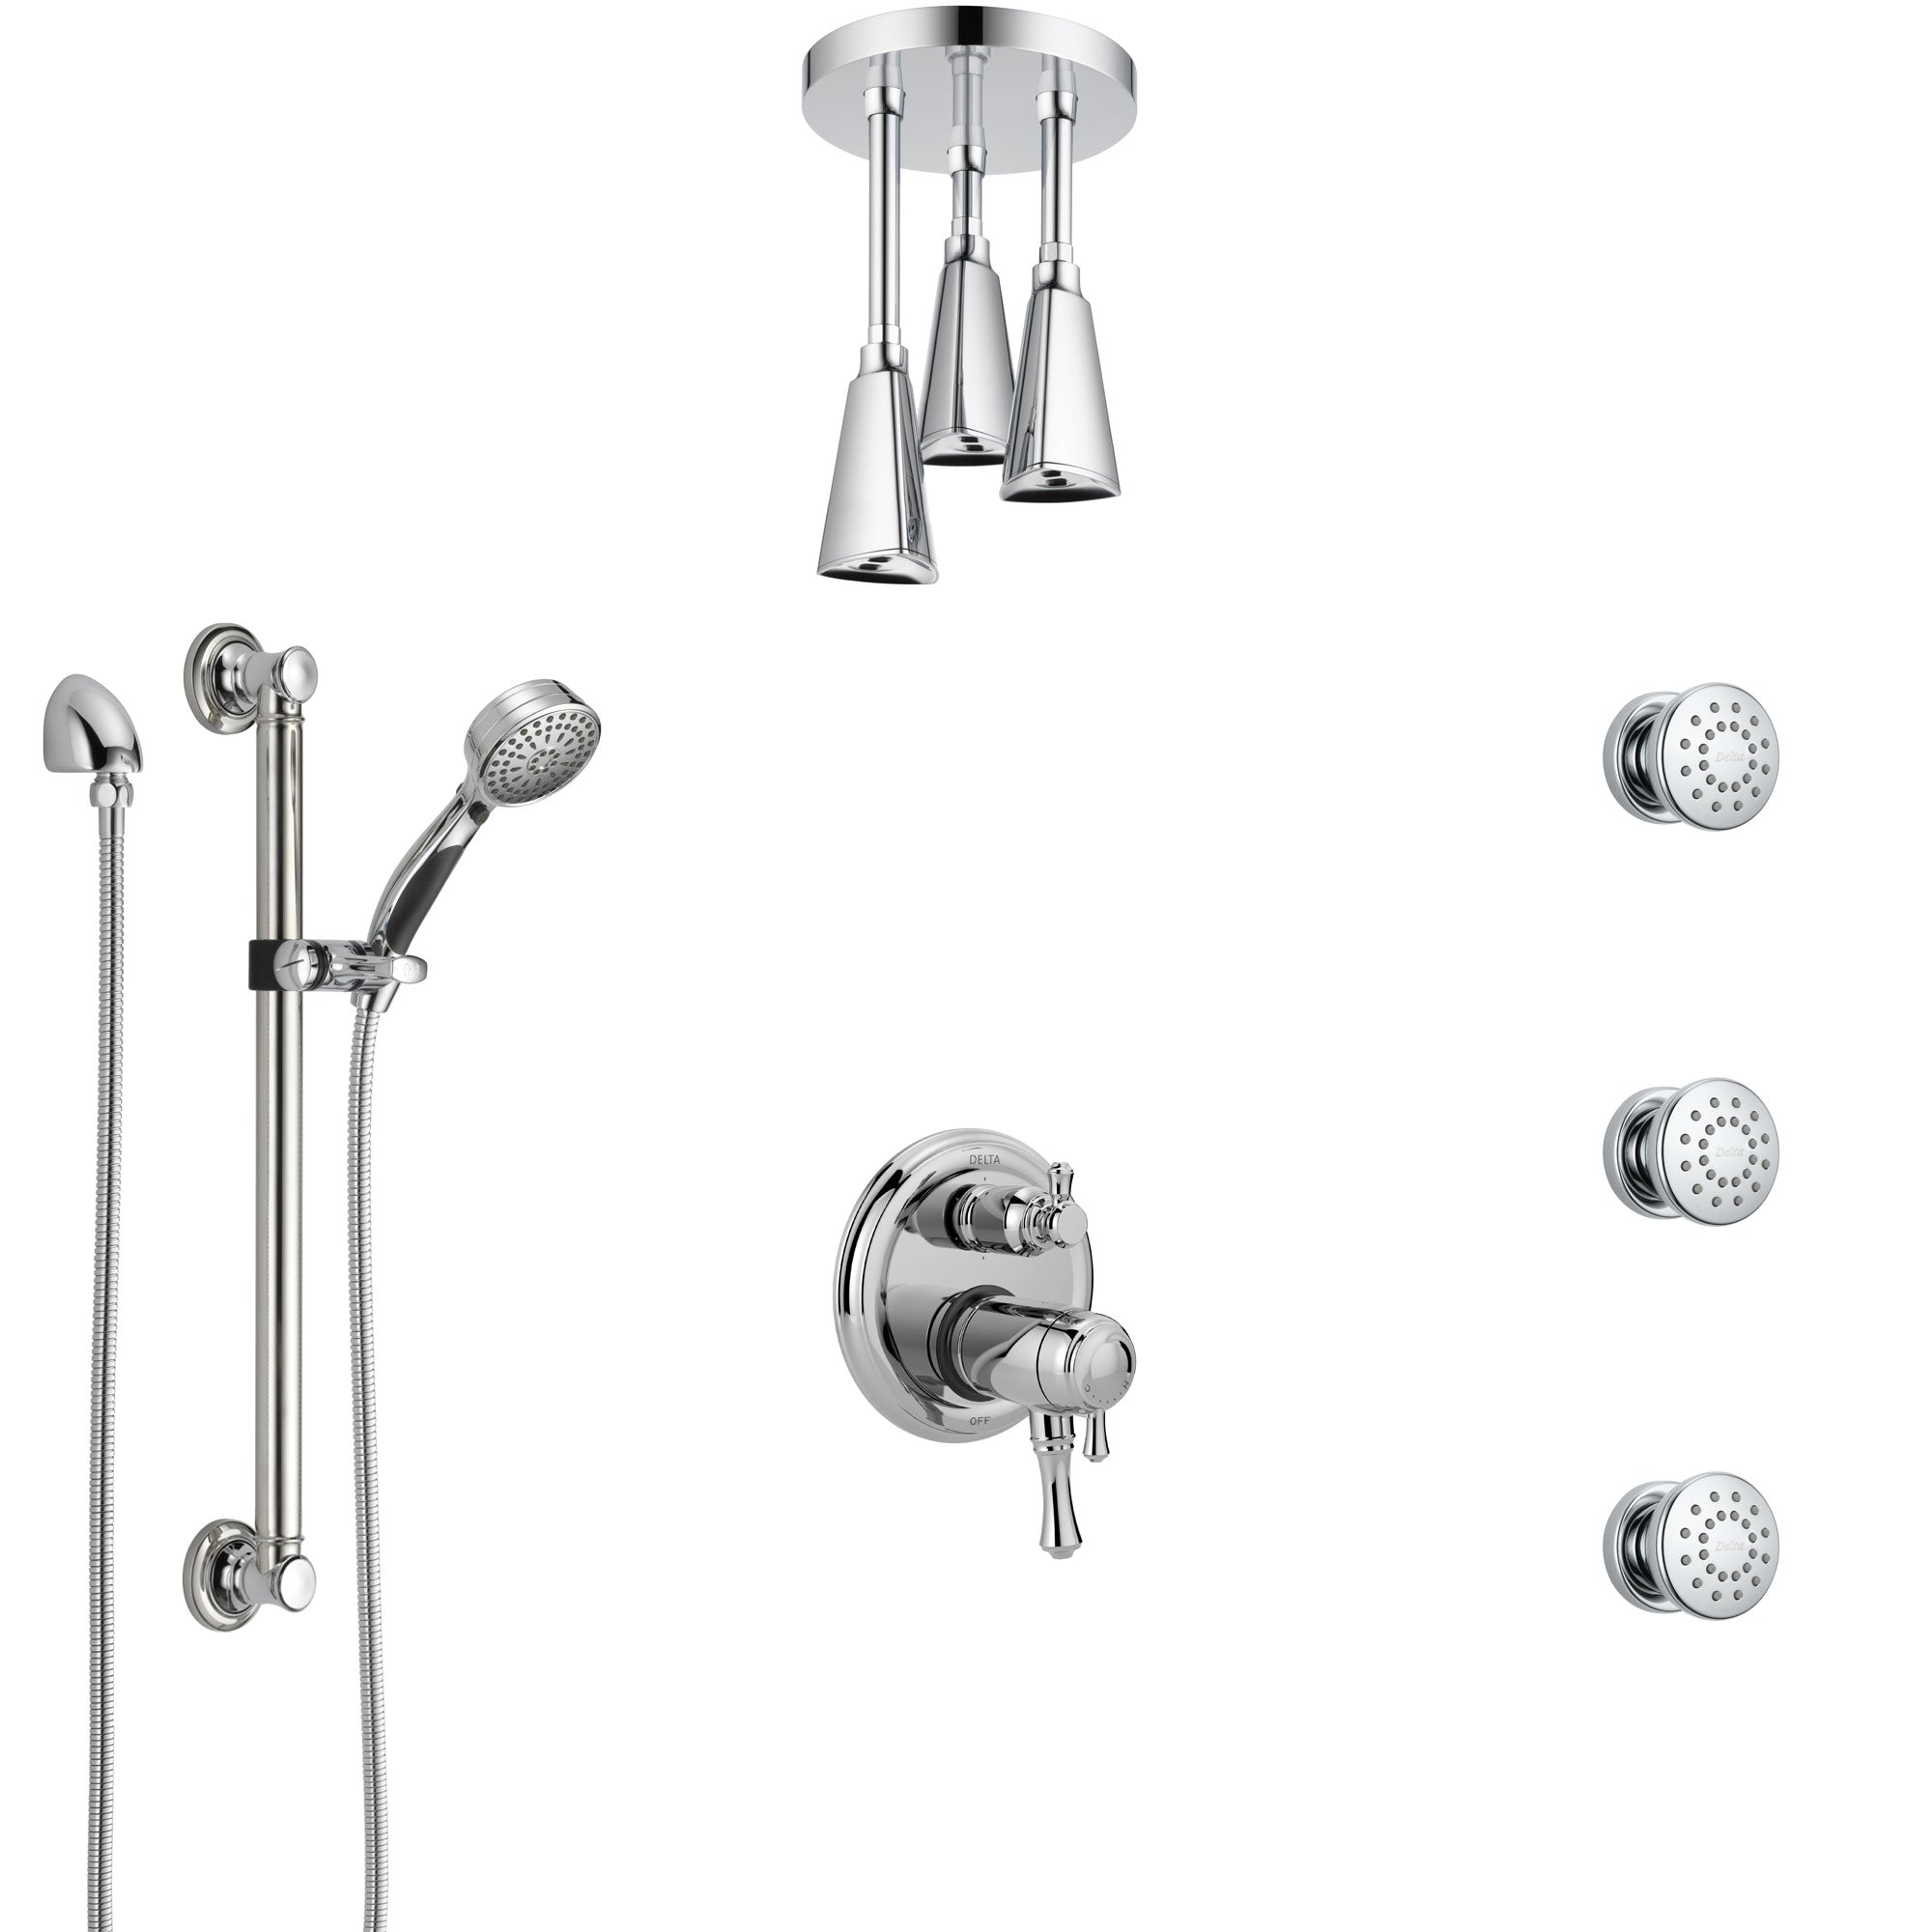 Delta Cassidy Chrome Dual Thermostatic Control Integrated Diverter Shower System, Ceiling Showerhead, 3 Body Sprays, and Grab Bar Hand Spray SS27T9976